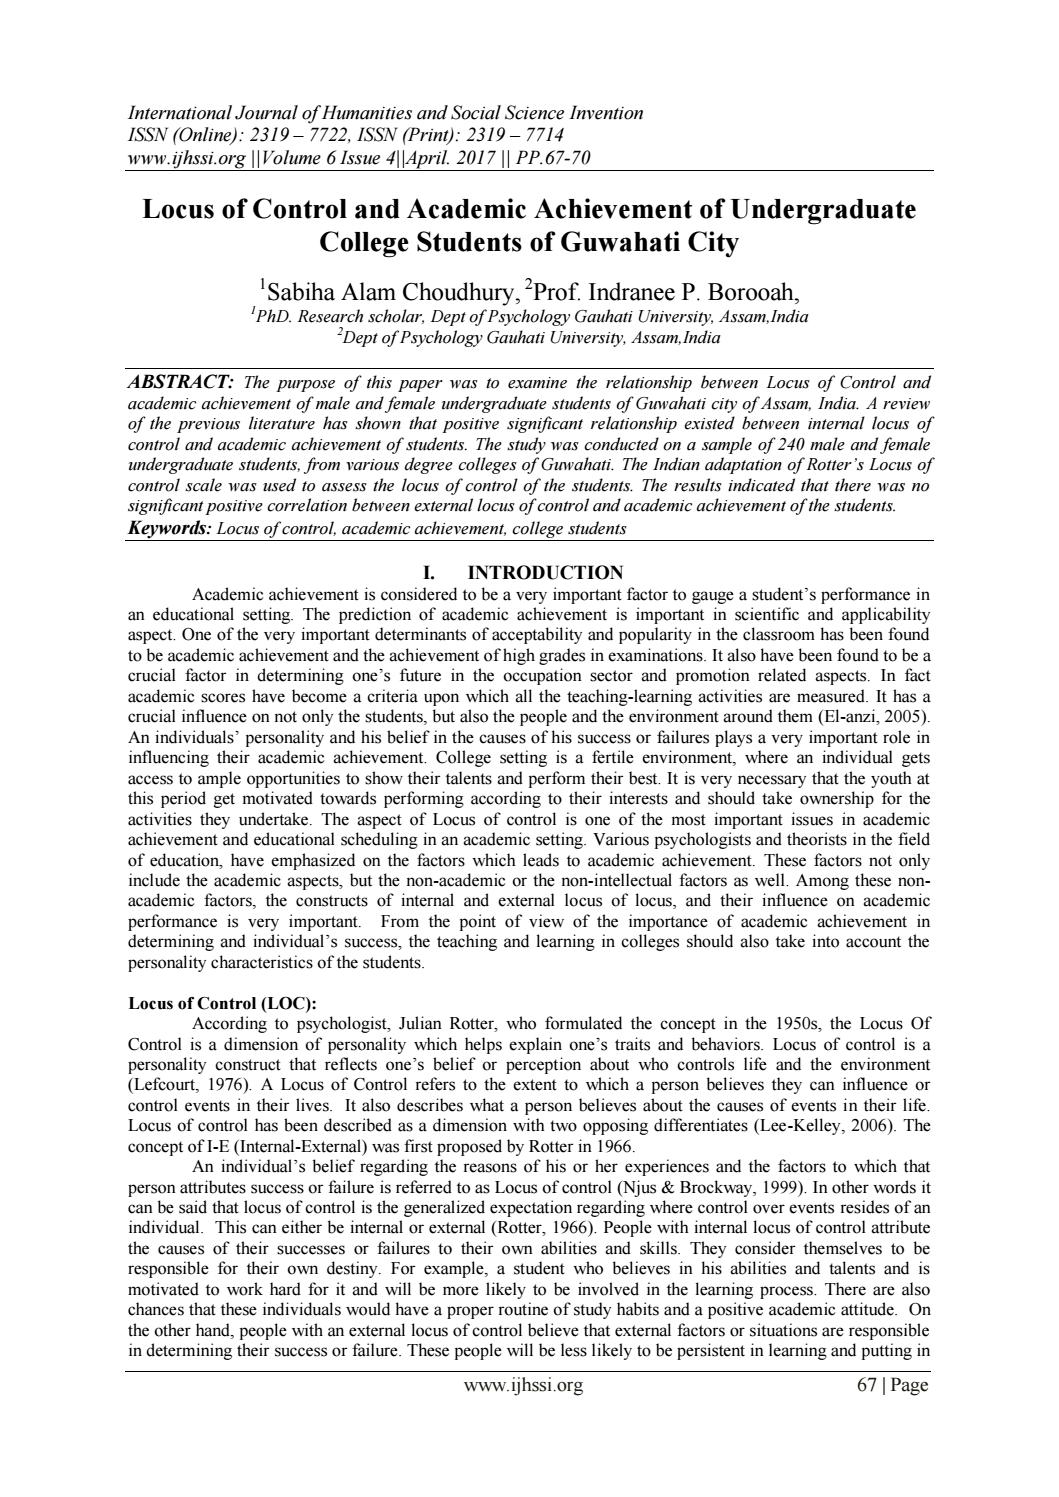 Locus of Control and Academic Achievement of Undergraduate College Students  of Guwahati City